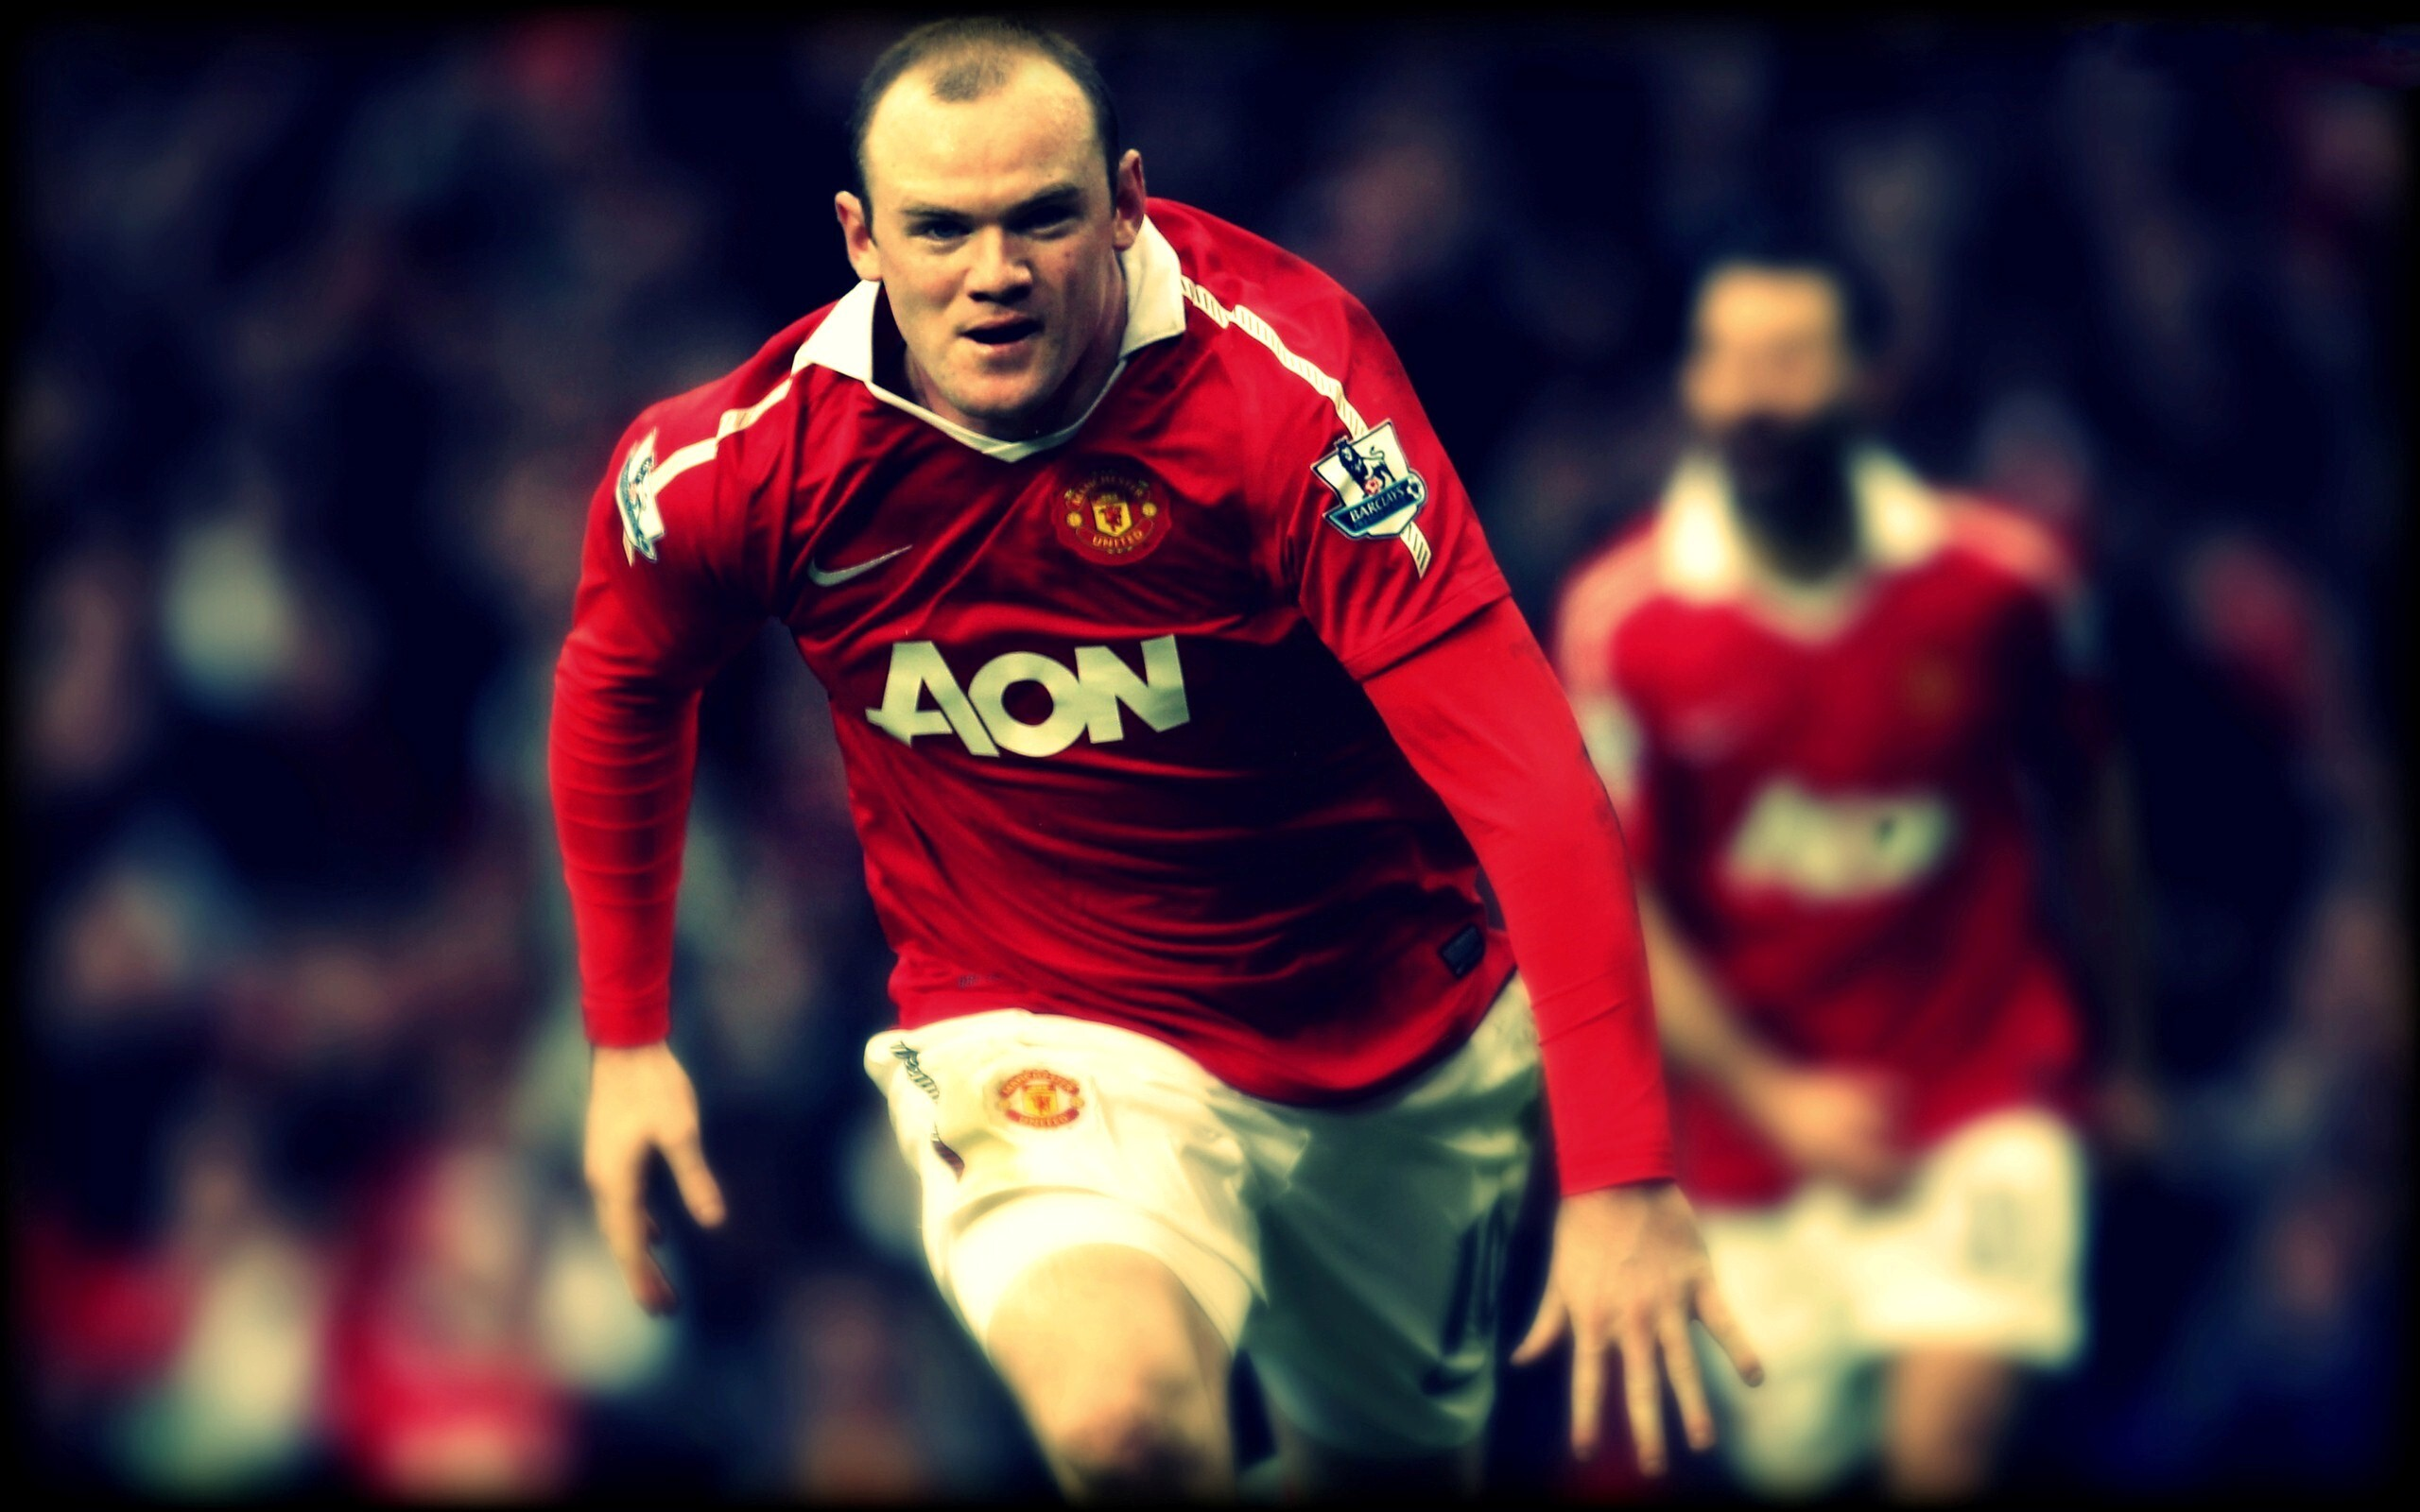 Wayne Rooney Football Wayne Rooney Football Player HD Wallpapers